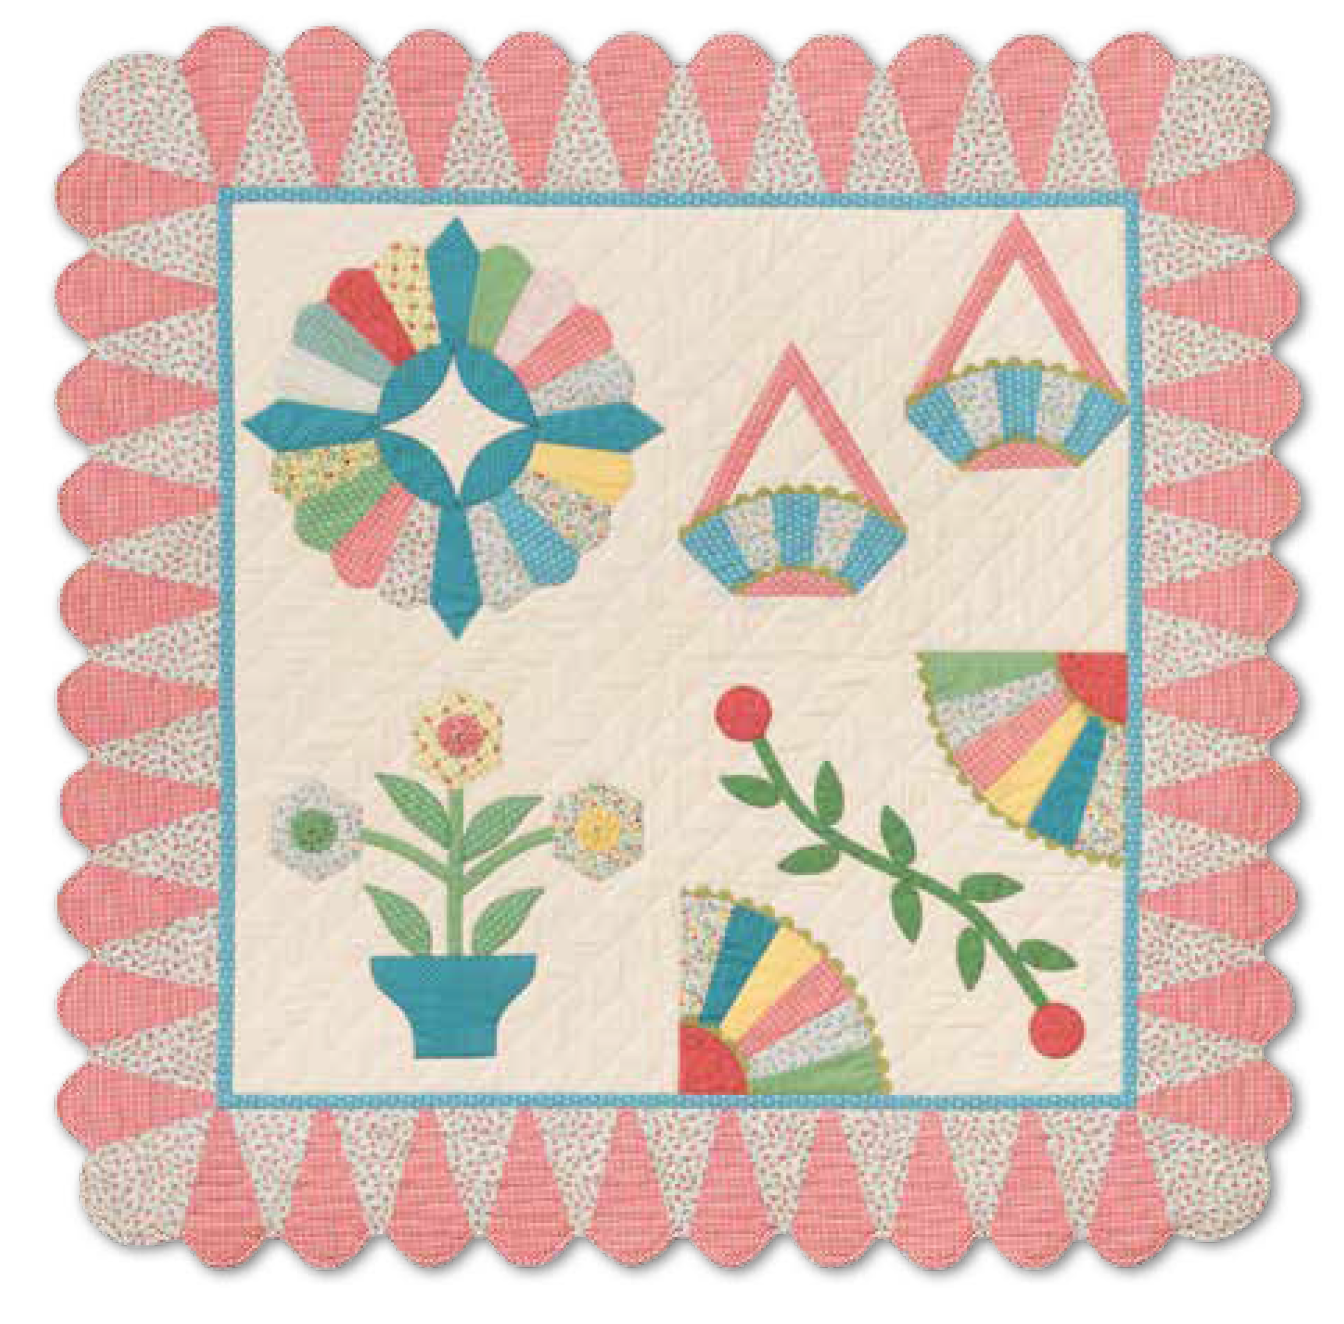 Ice Cream Cone Border Templates 735272040811 Quilt In A Day